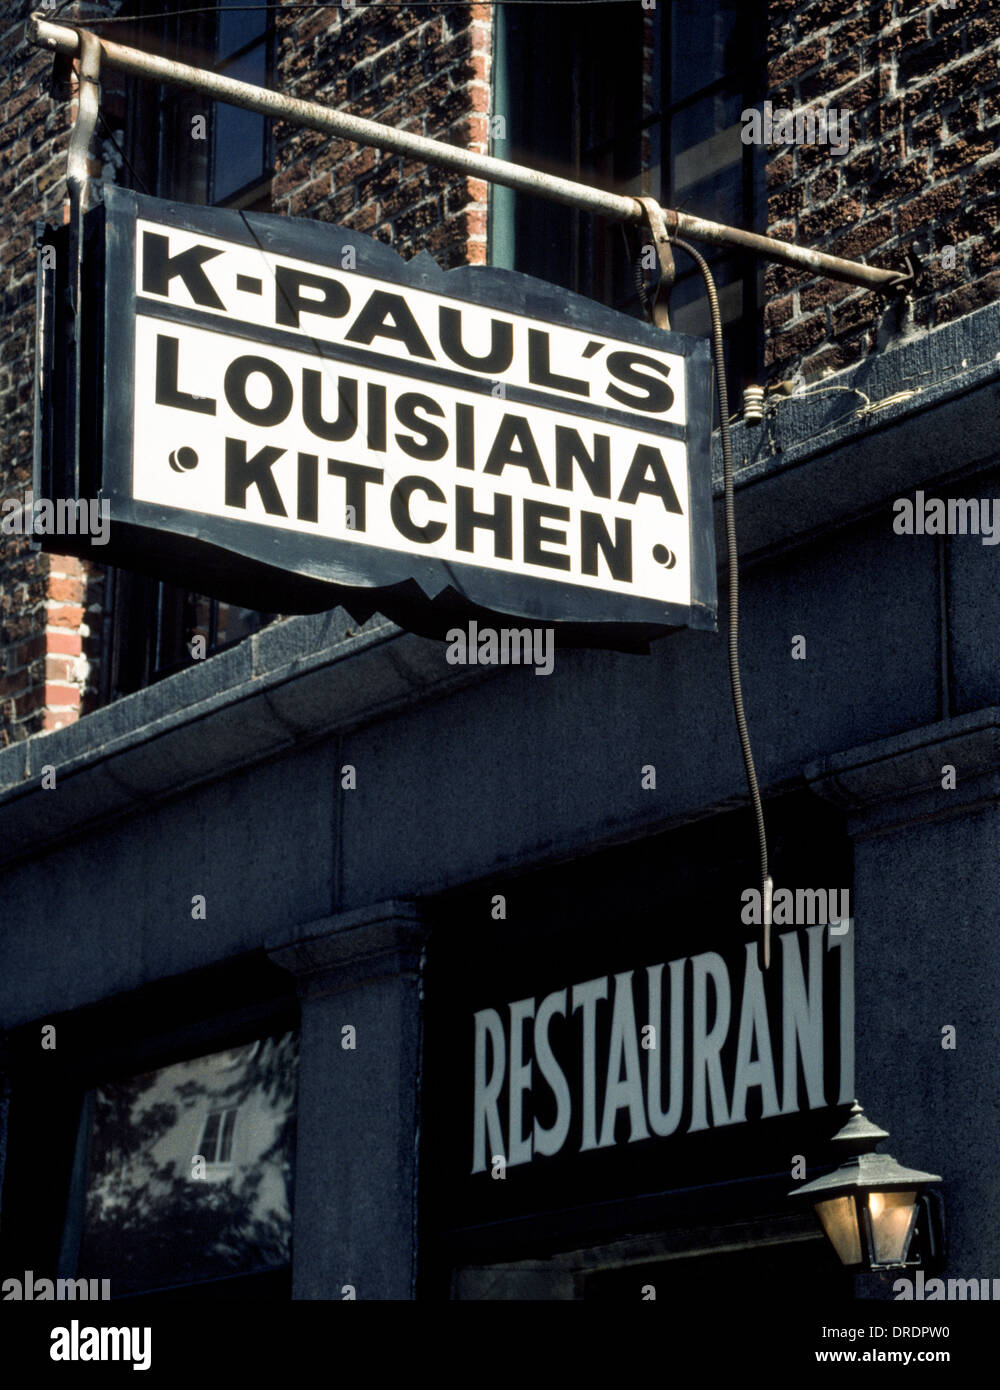 k-paul's louisiana kitchen sign marks the new orleans' french